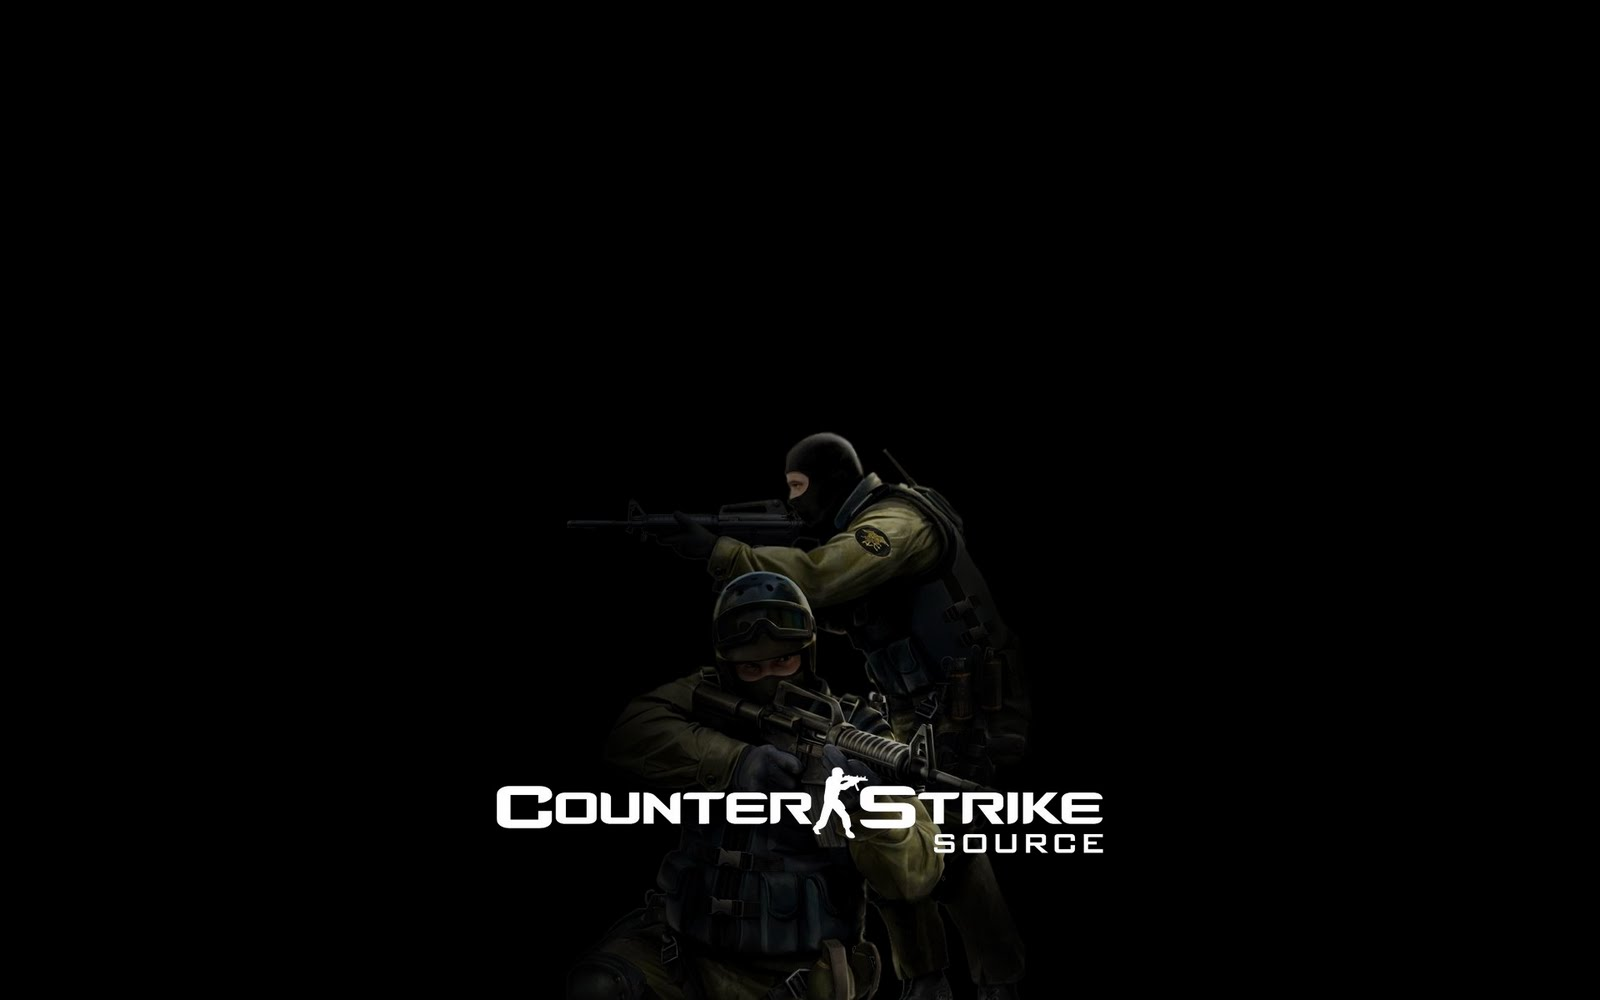 Counter strike source hd wallpapers wallpapers - Counter strike wallpaper hd ...